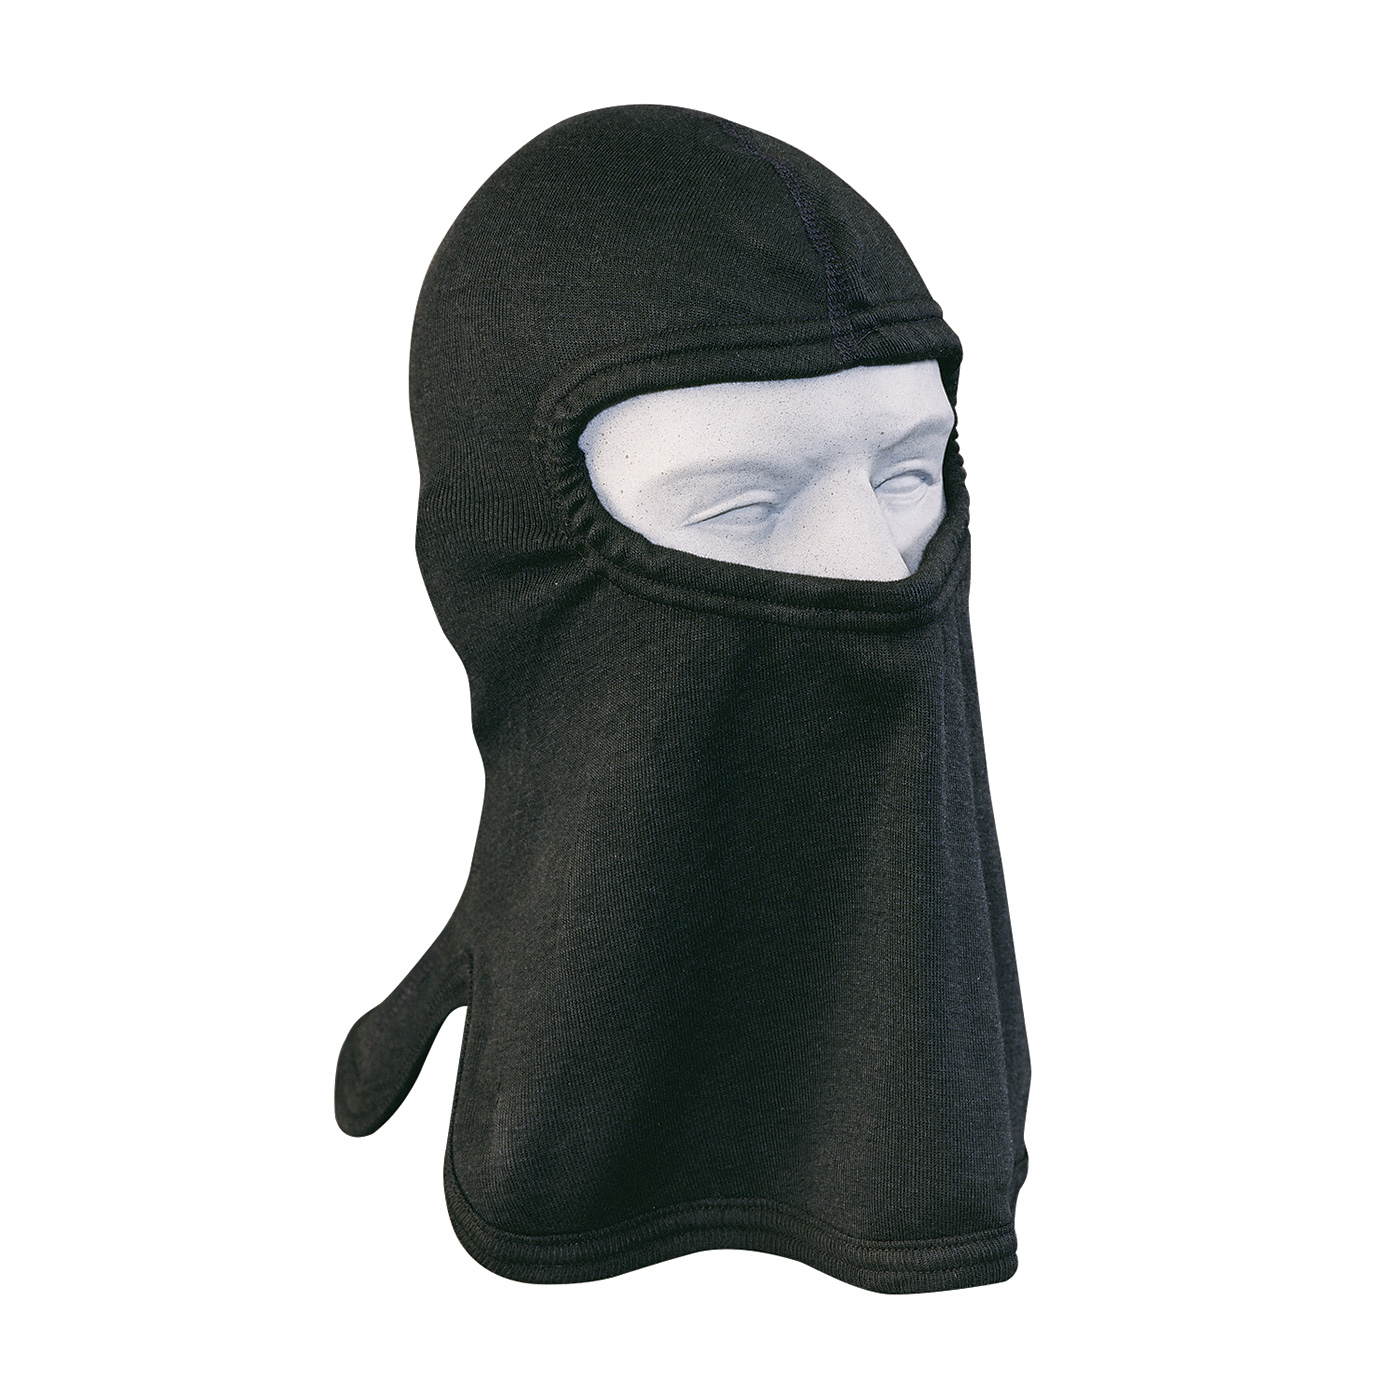 PIP® Carbon / Technora Hood with Tri-Cut Design - Full Face #906-8416CT